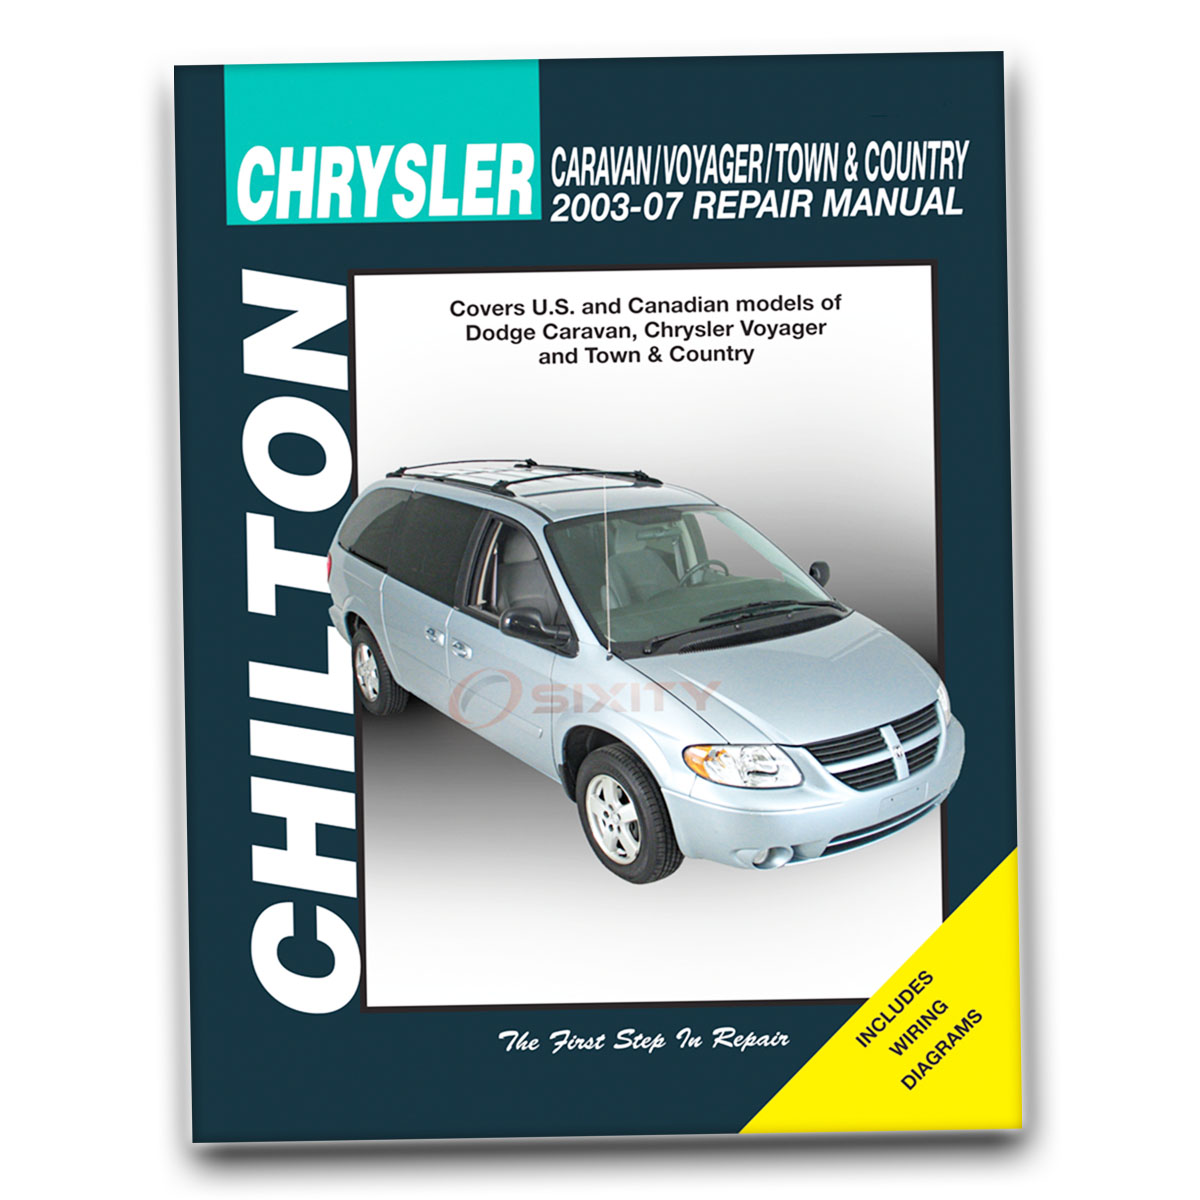 Chilton Repair Manual for Chrysler Town & Country (Van) LX Touring EX ox